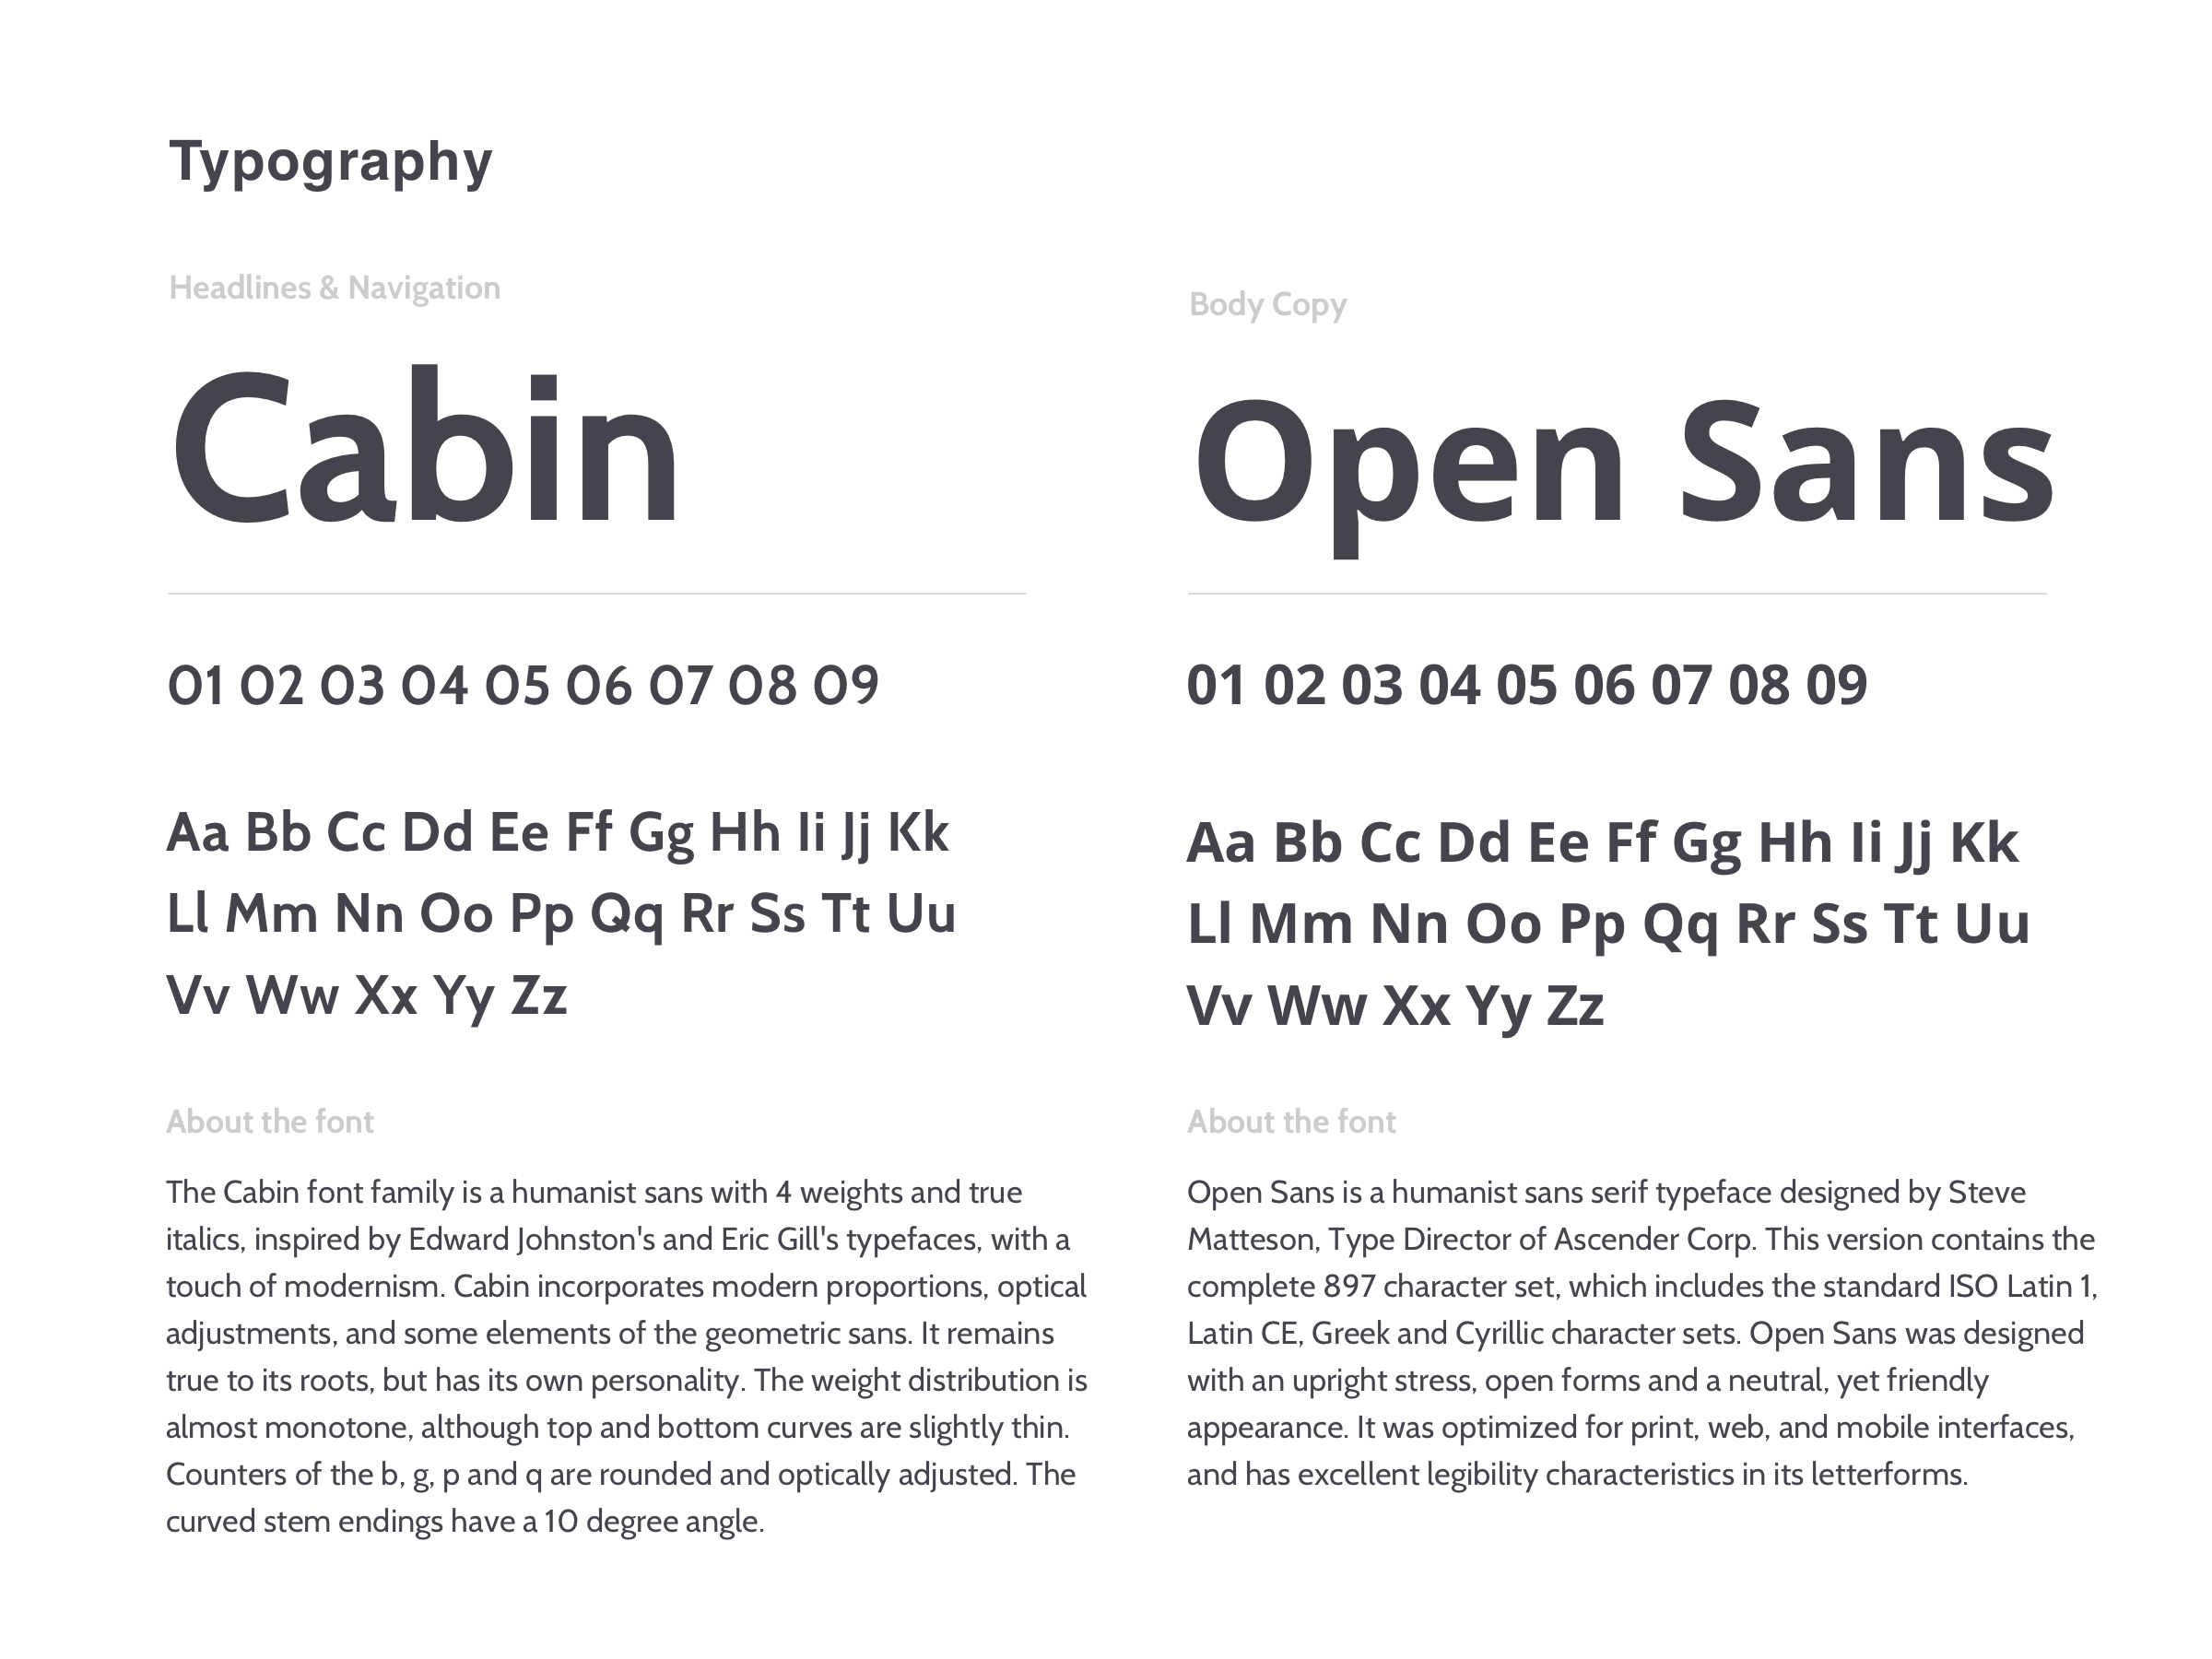 Typography Breakdown